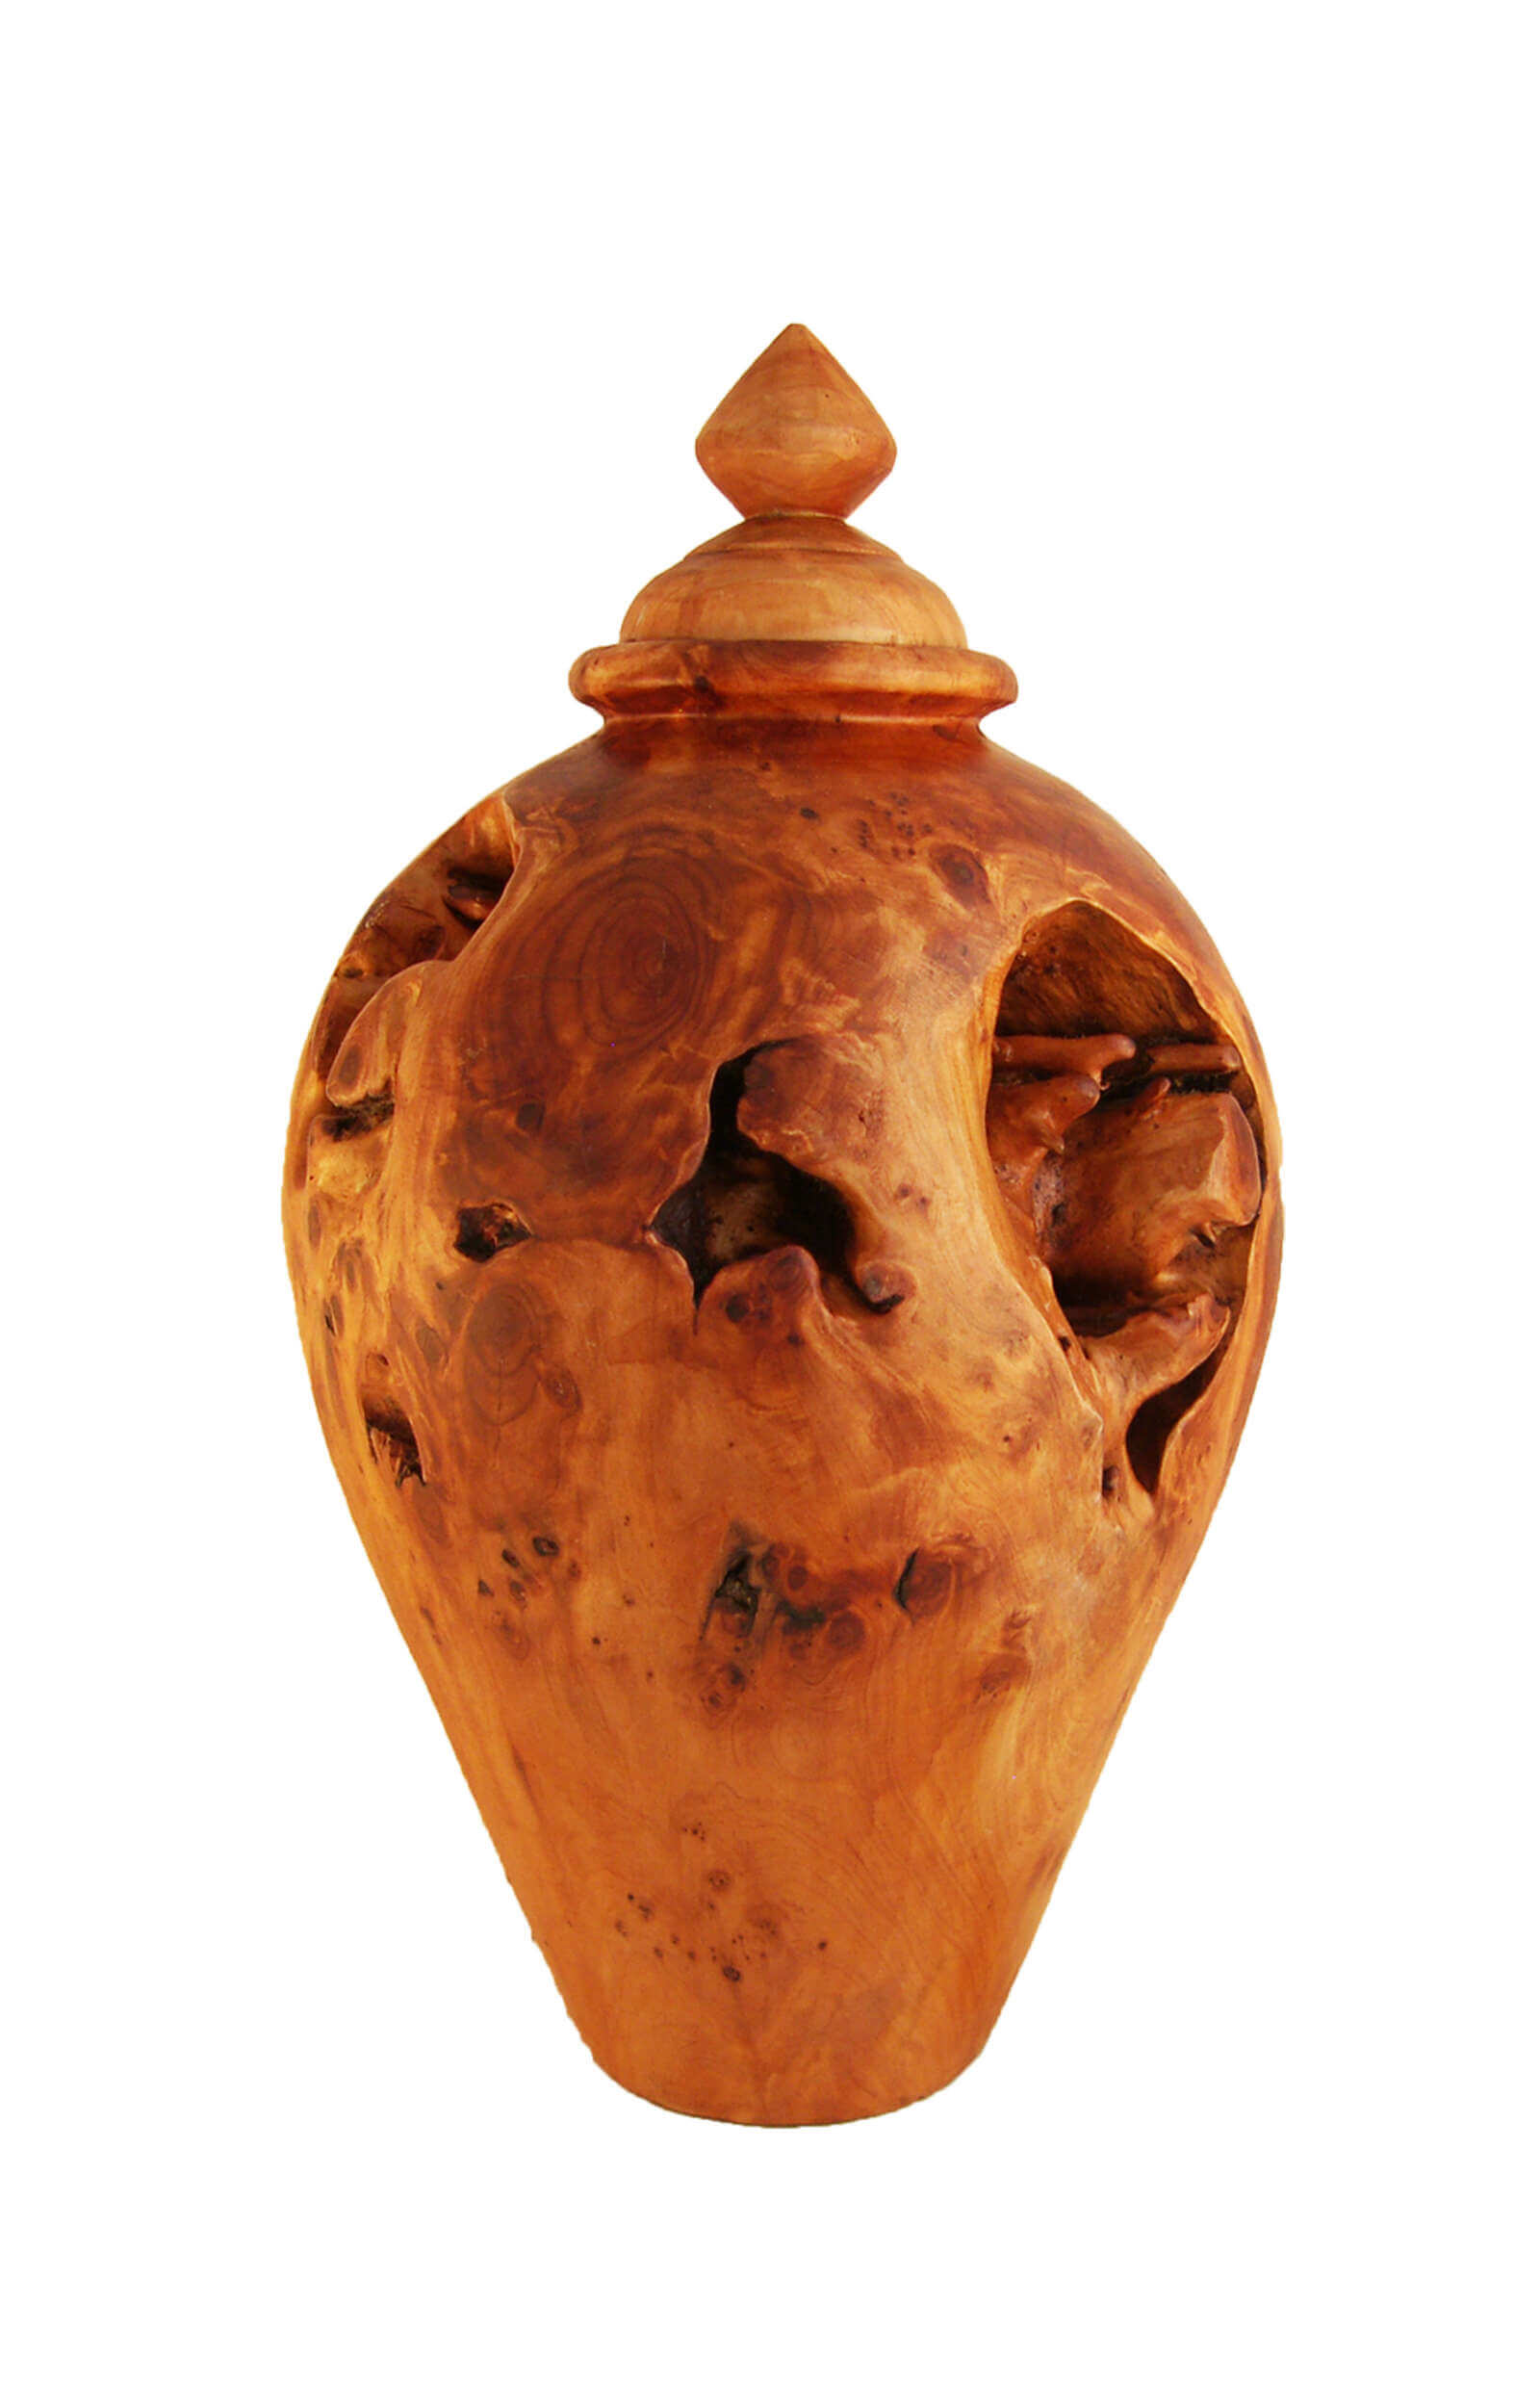 real root wood urn arved wooden jar casket pot container tree timber lumber carve